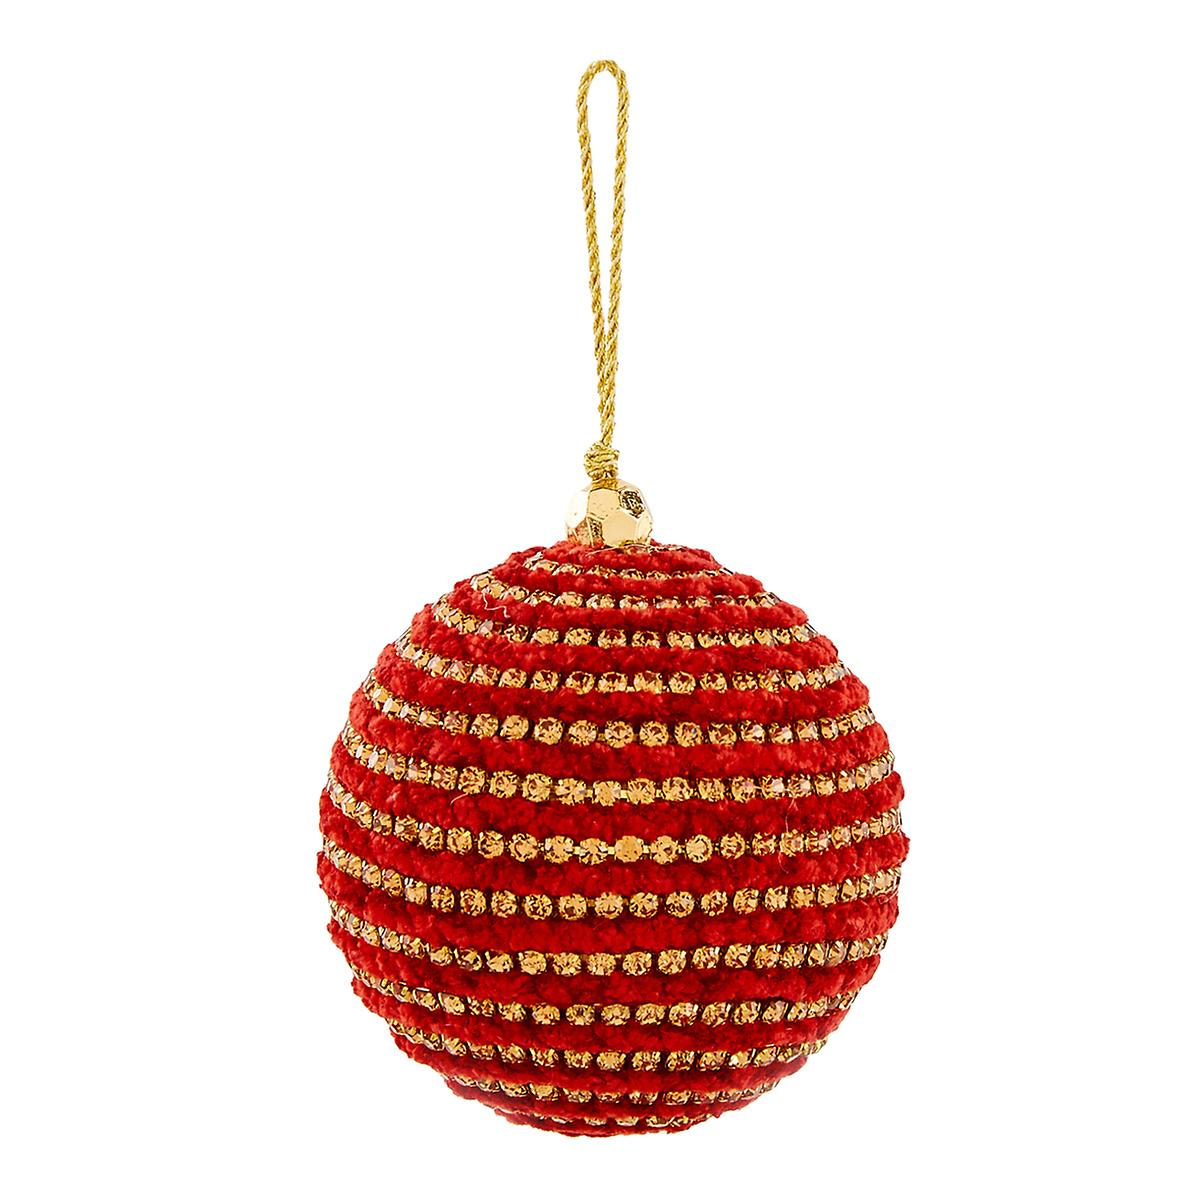 Red Crystal Ball Tie-On Ornament